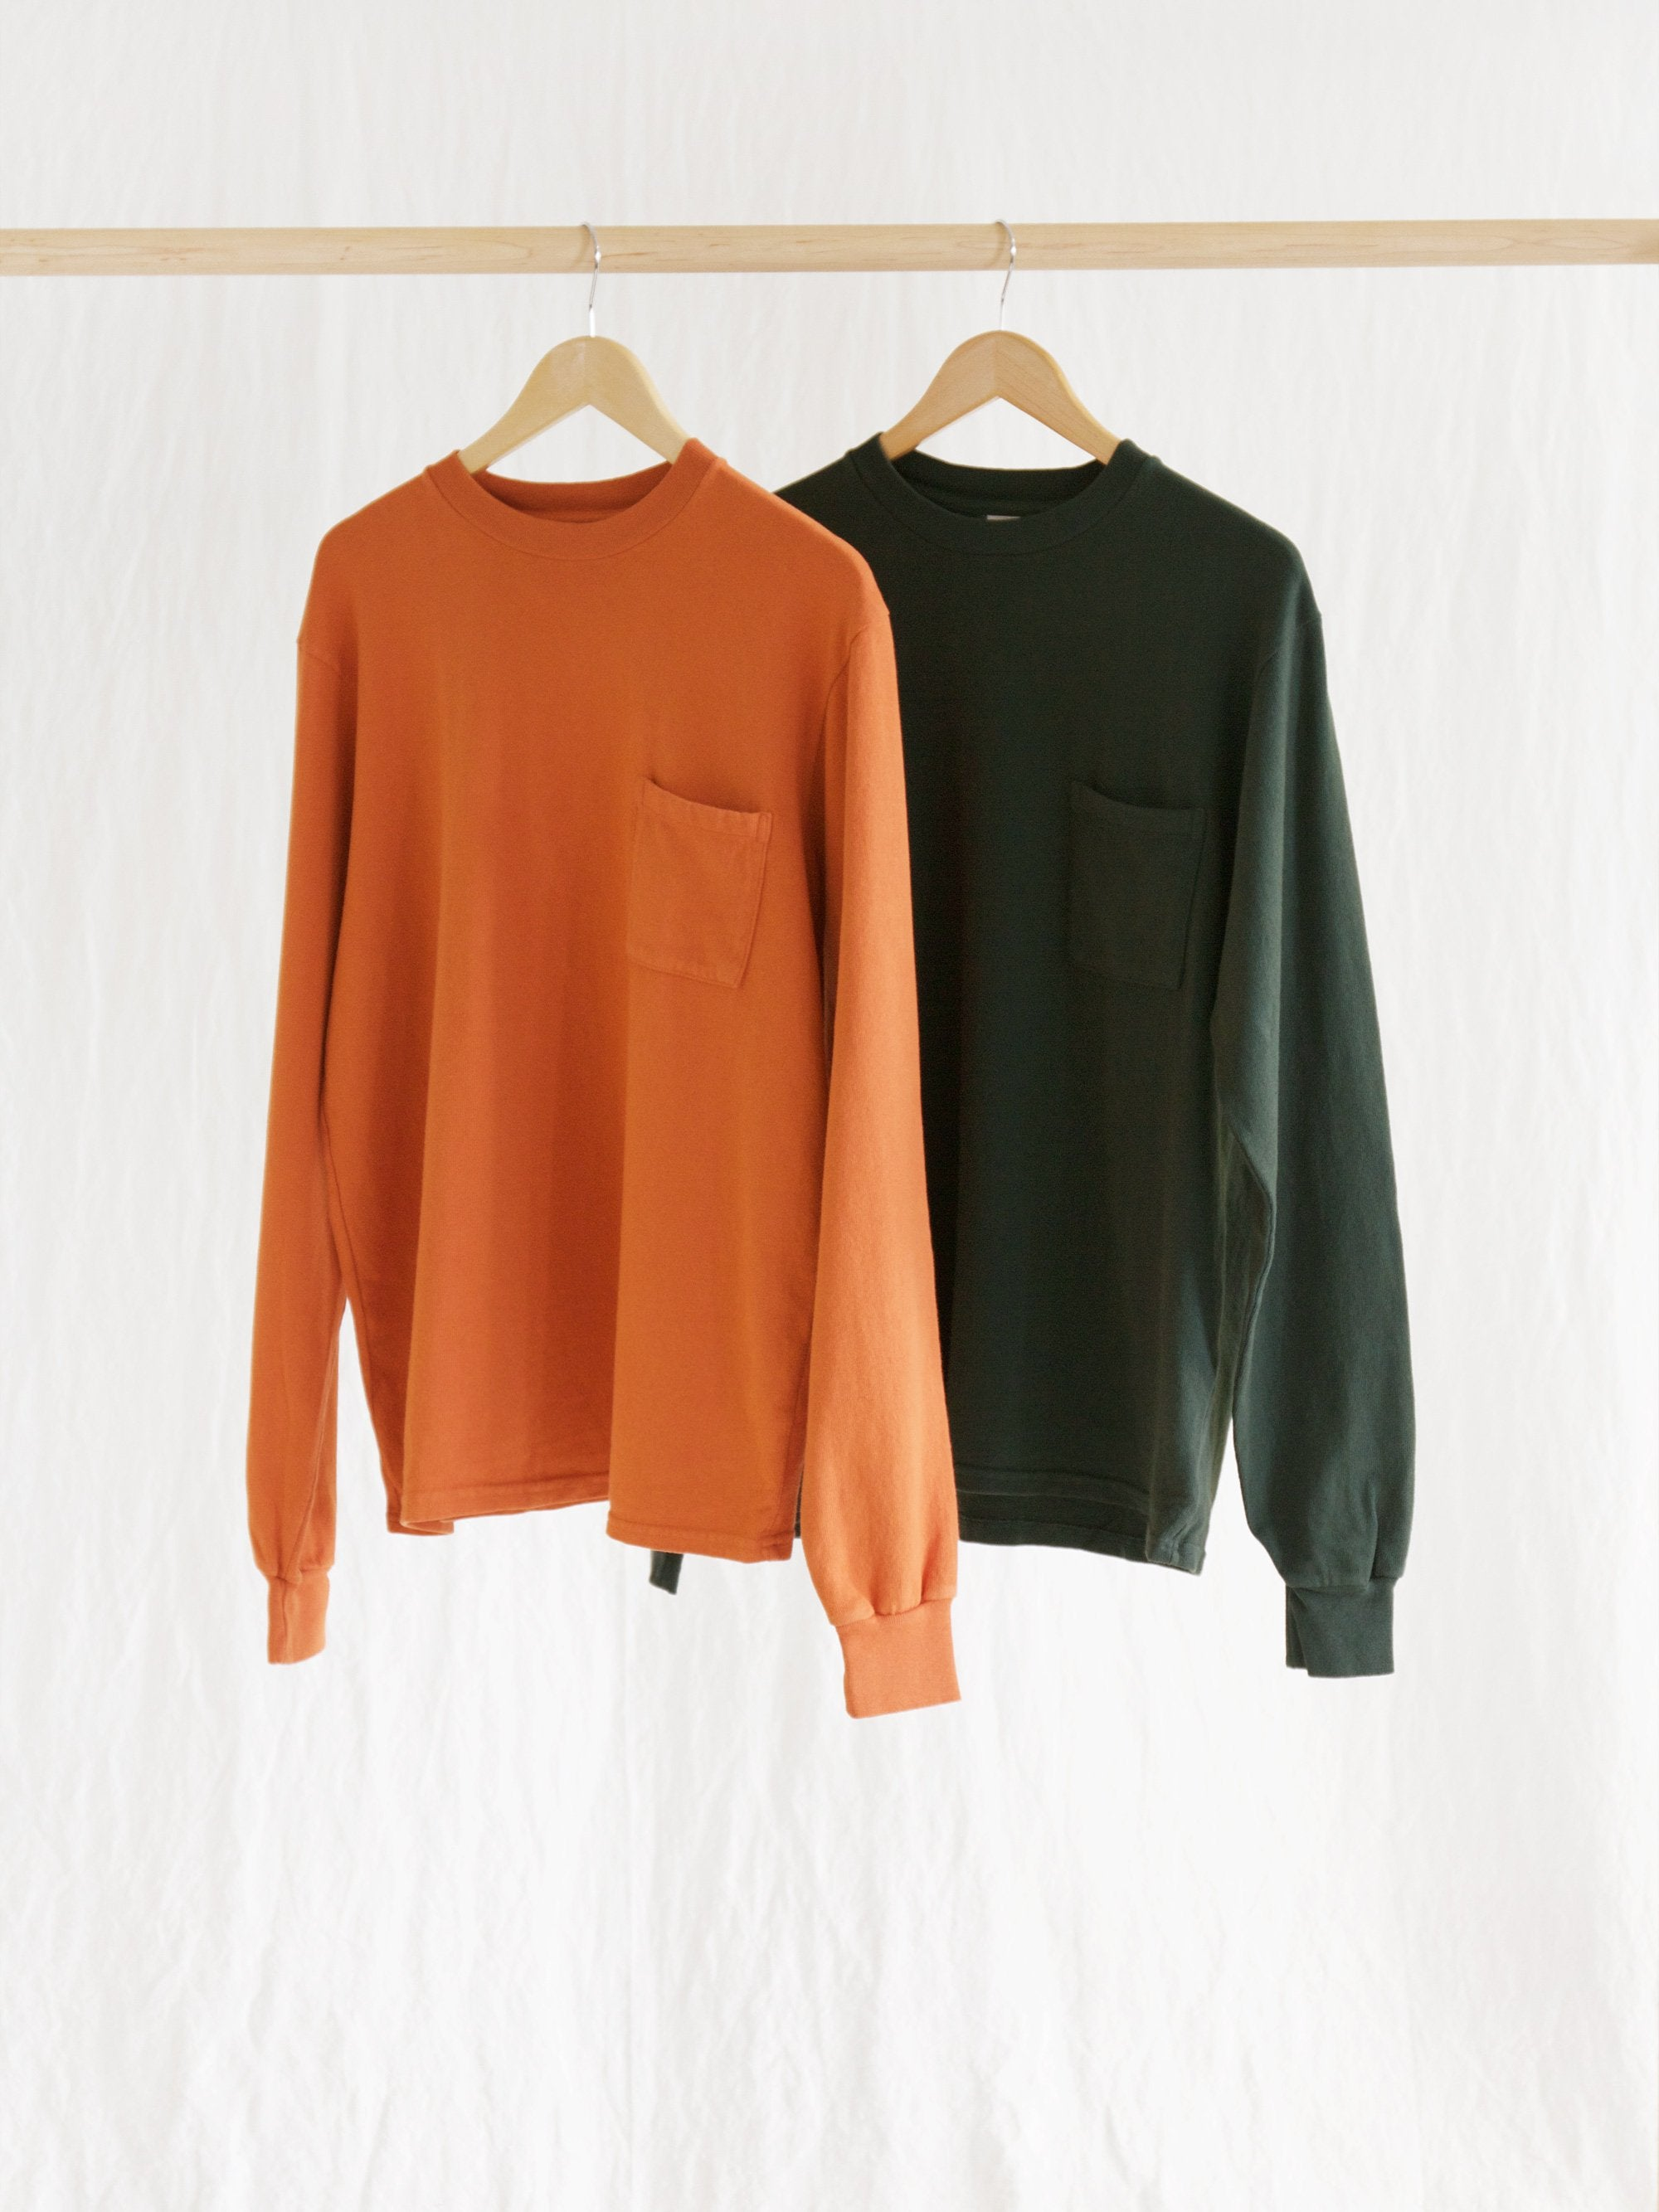 Namu Shop - paa LS Pocket Tee - Autumnal Orange